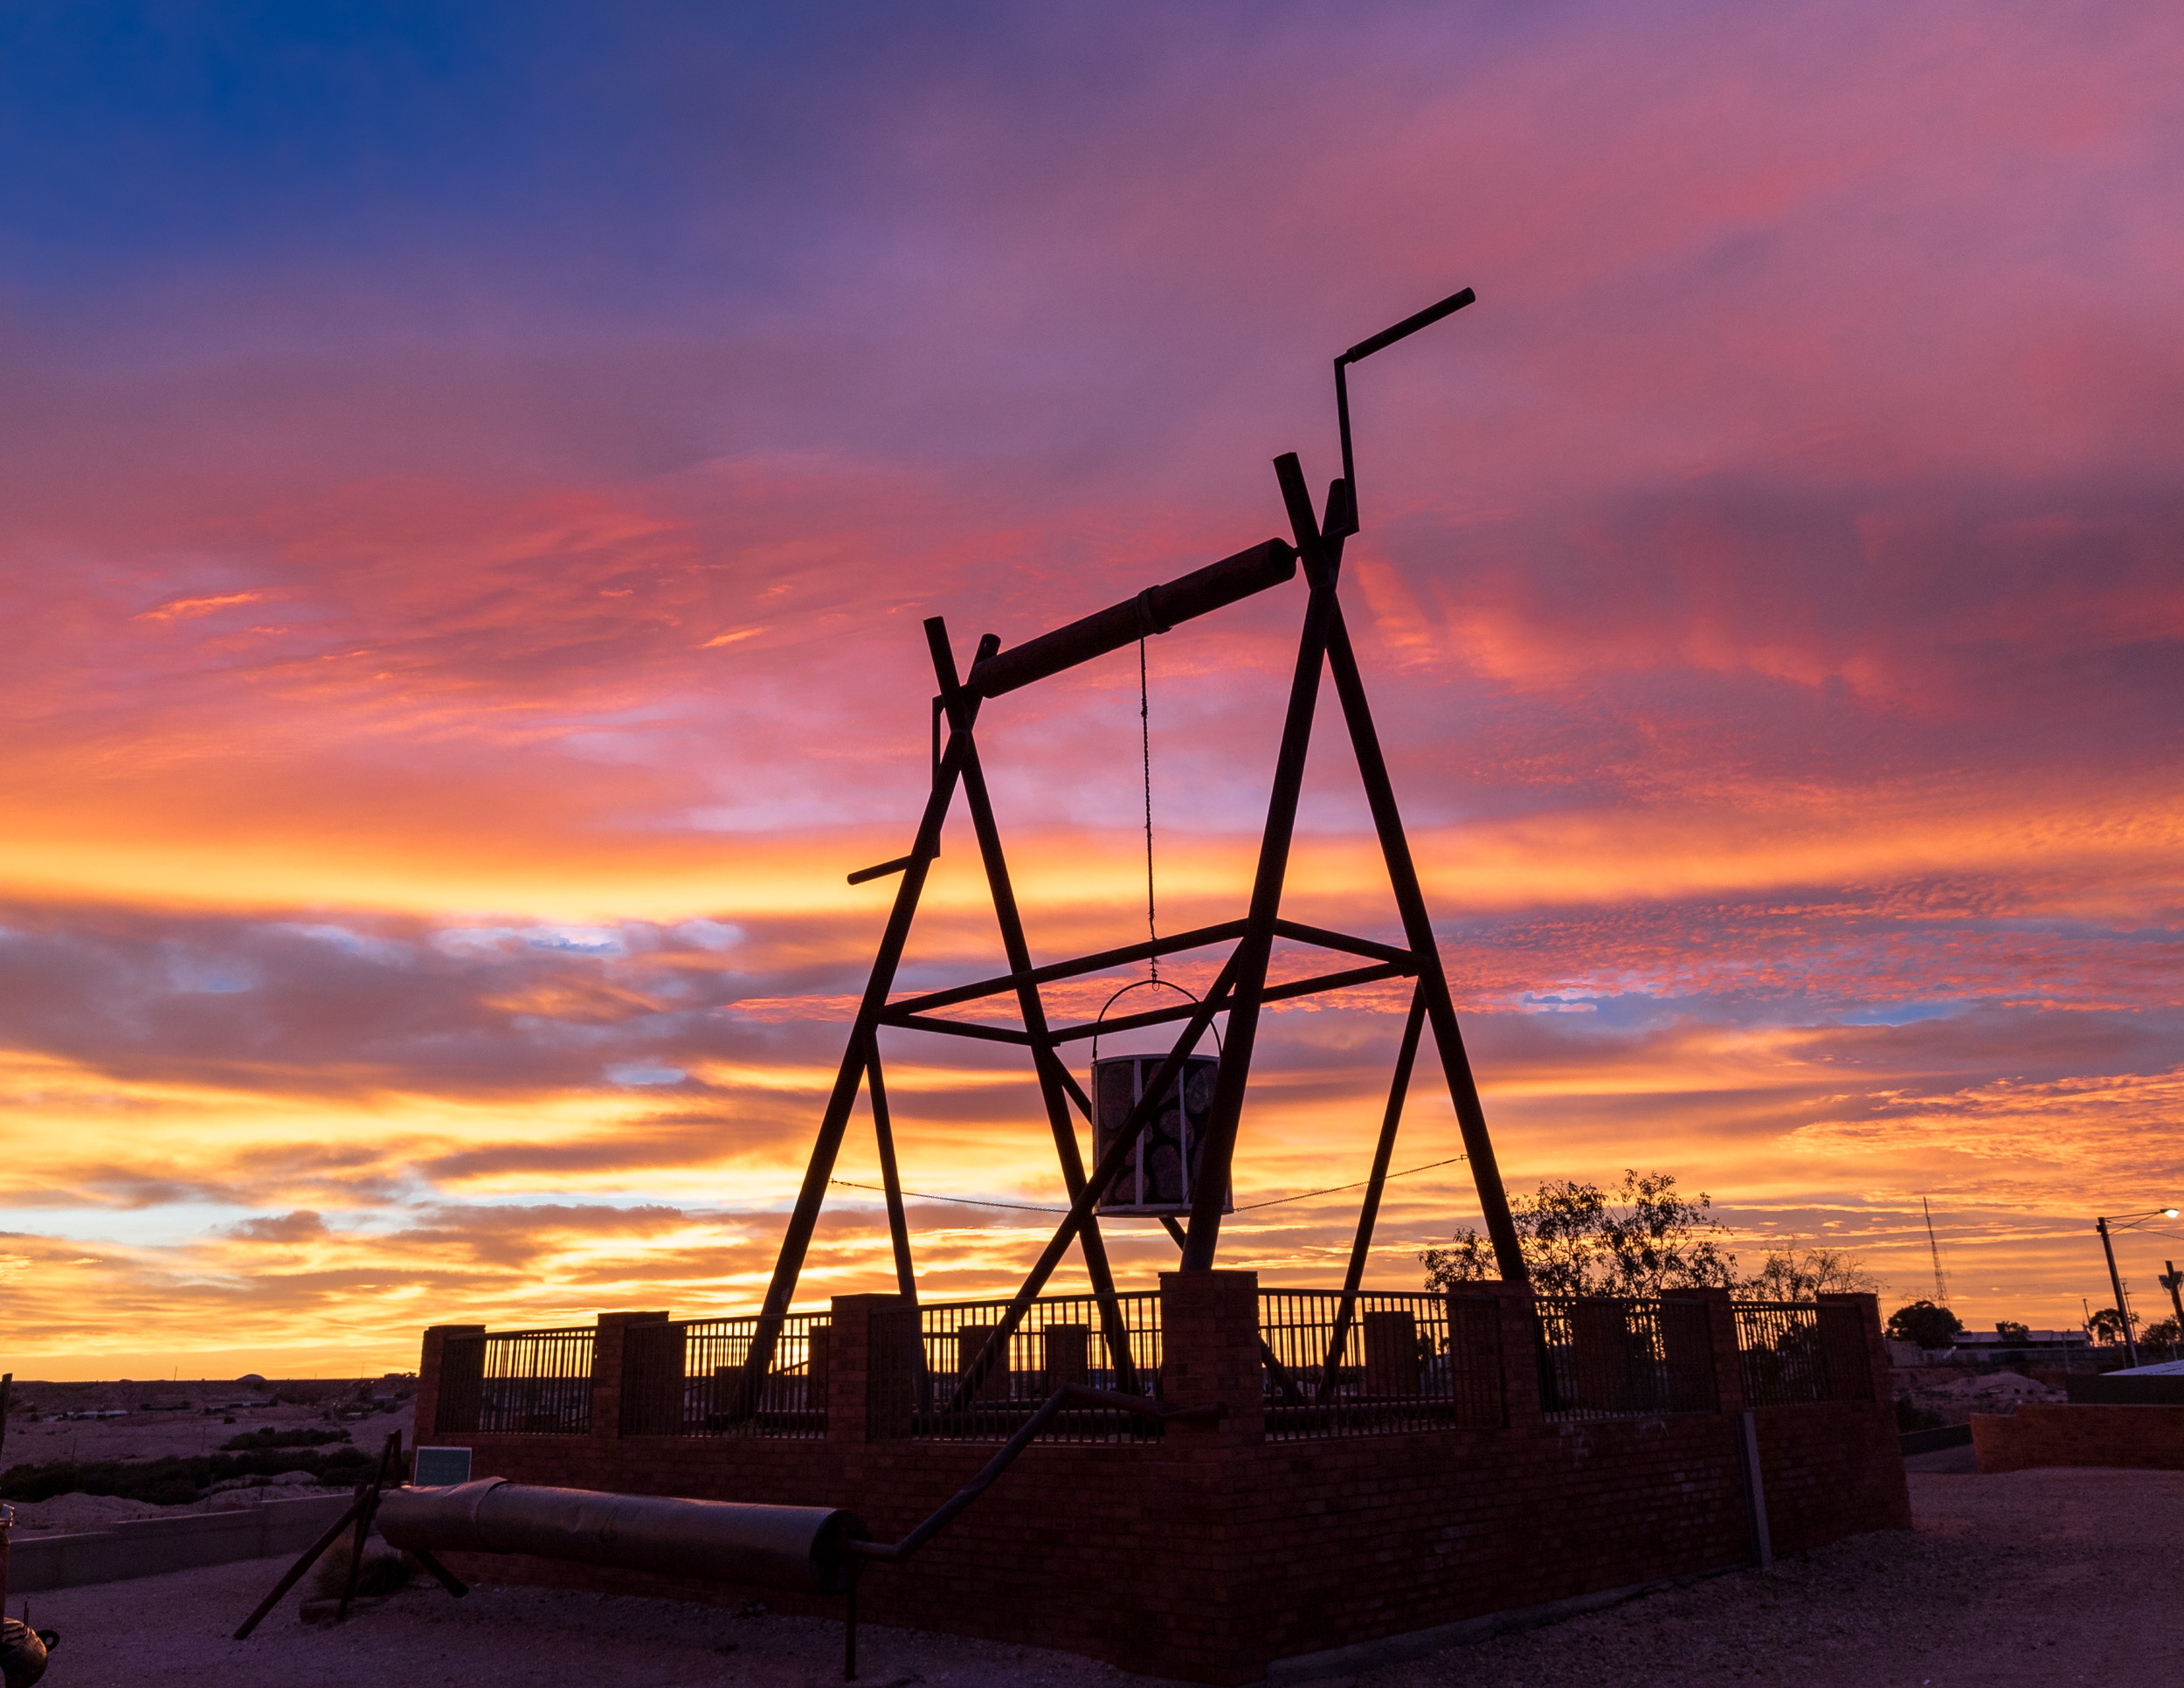 Epic sunrise at the Big Winch in Coober Pedy